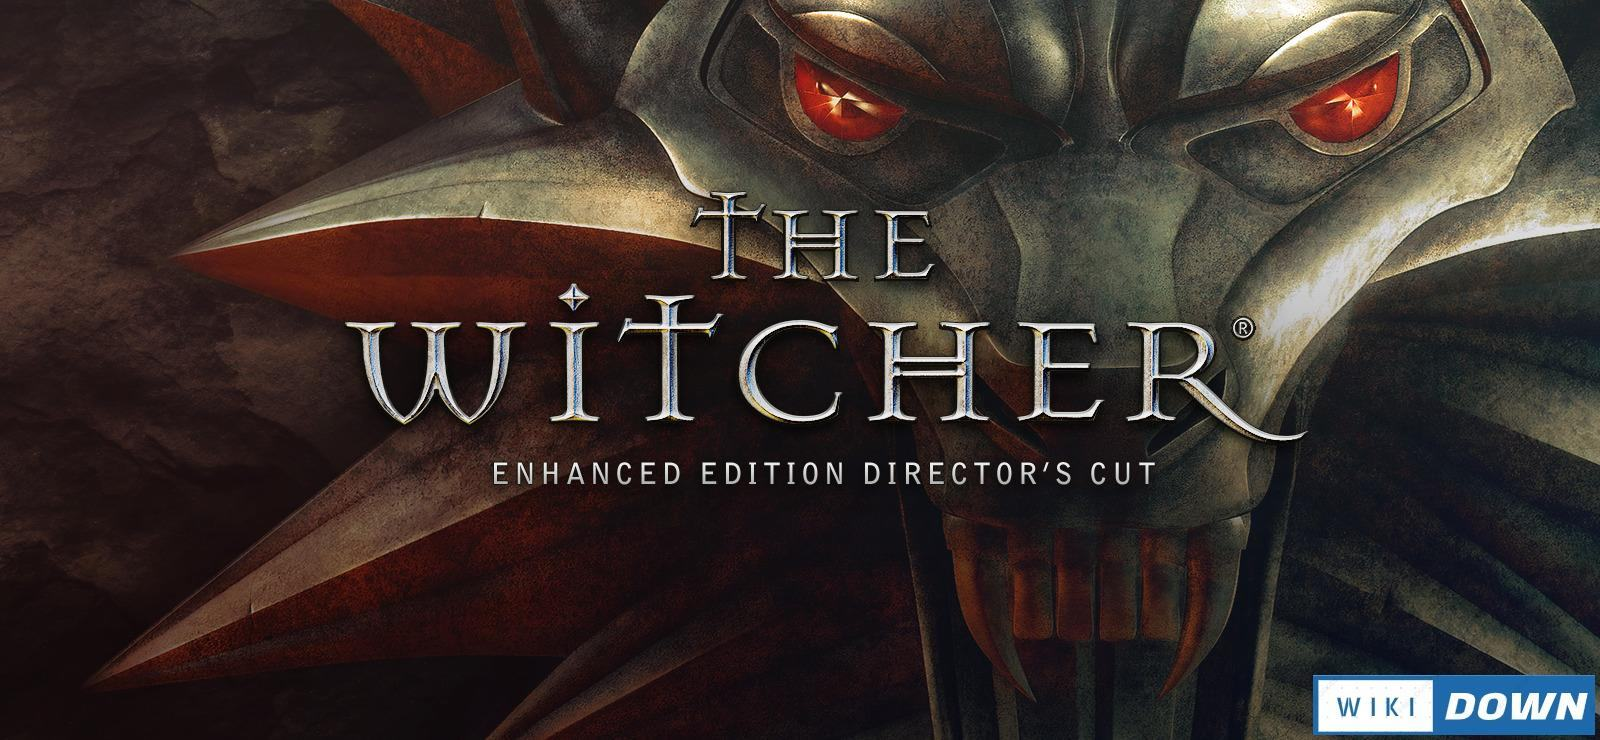 Download The Witcher Enhanced Edition Director's Cut Mới Nhất